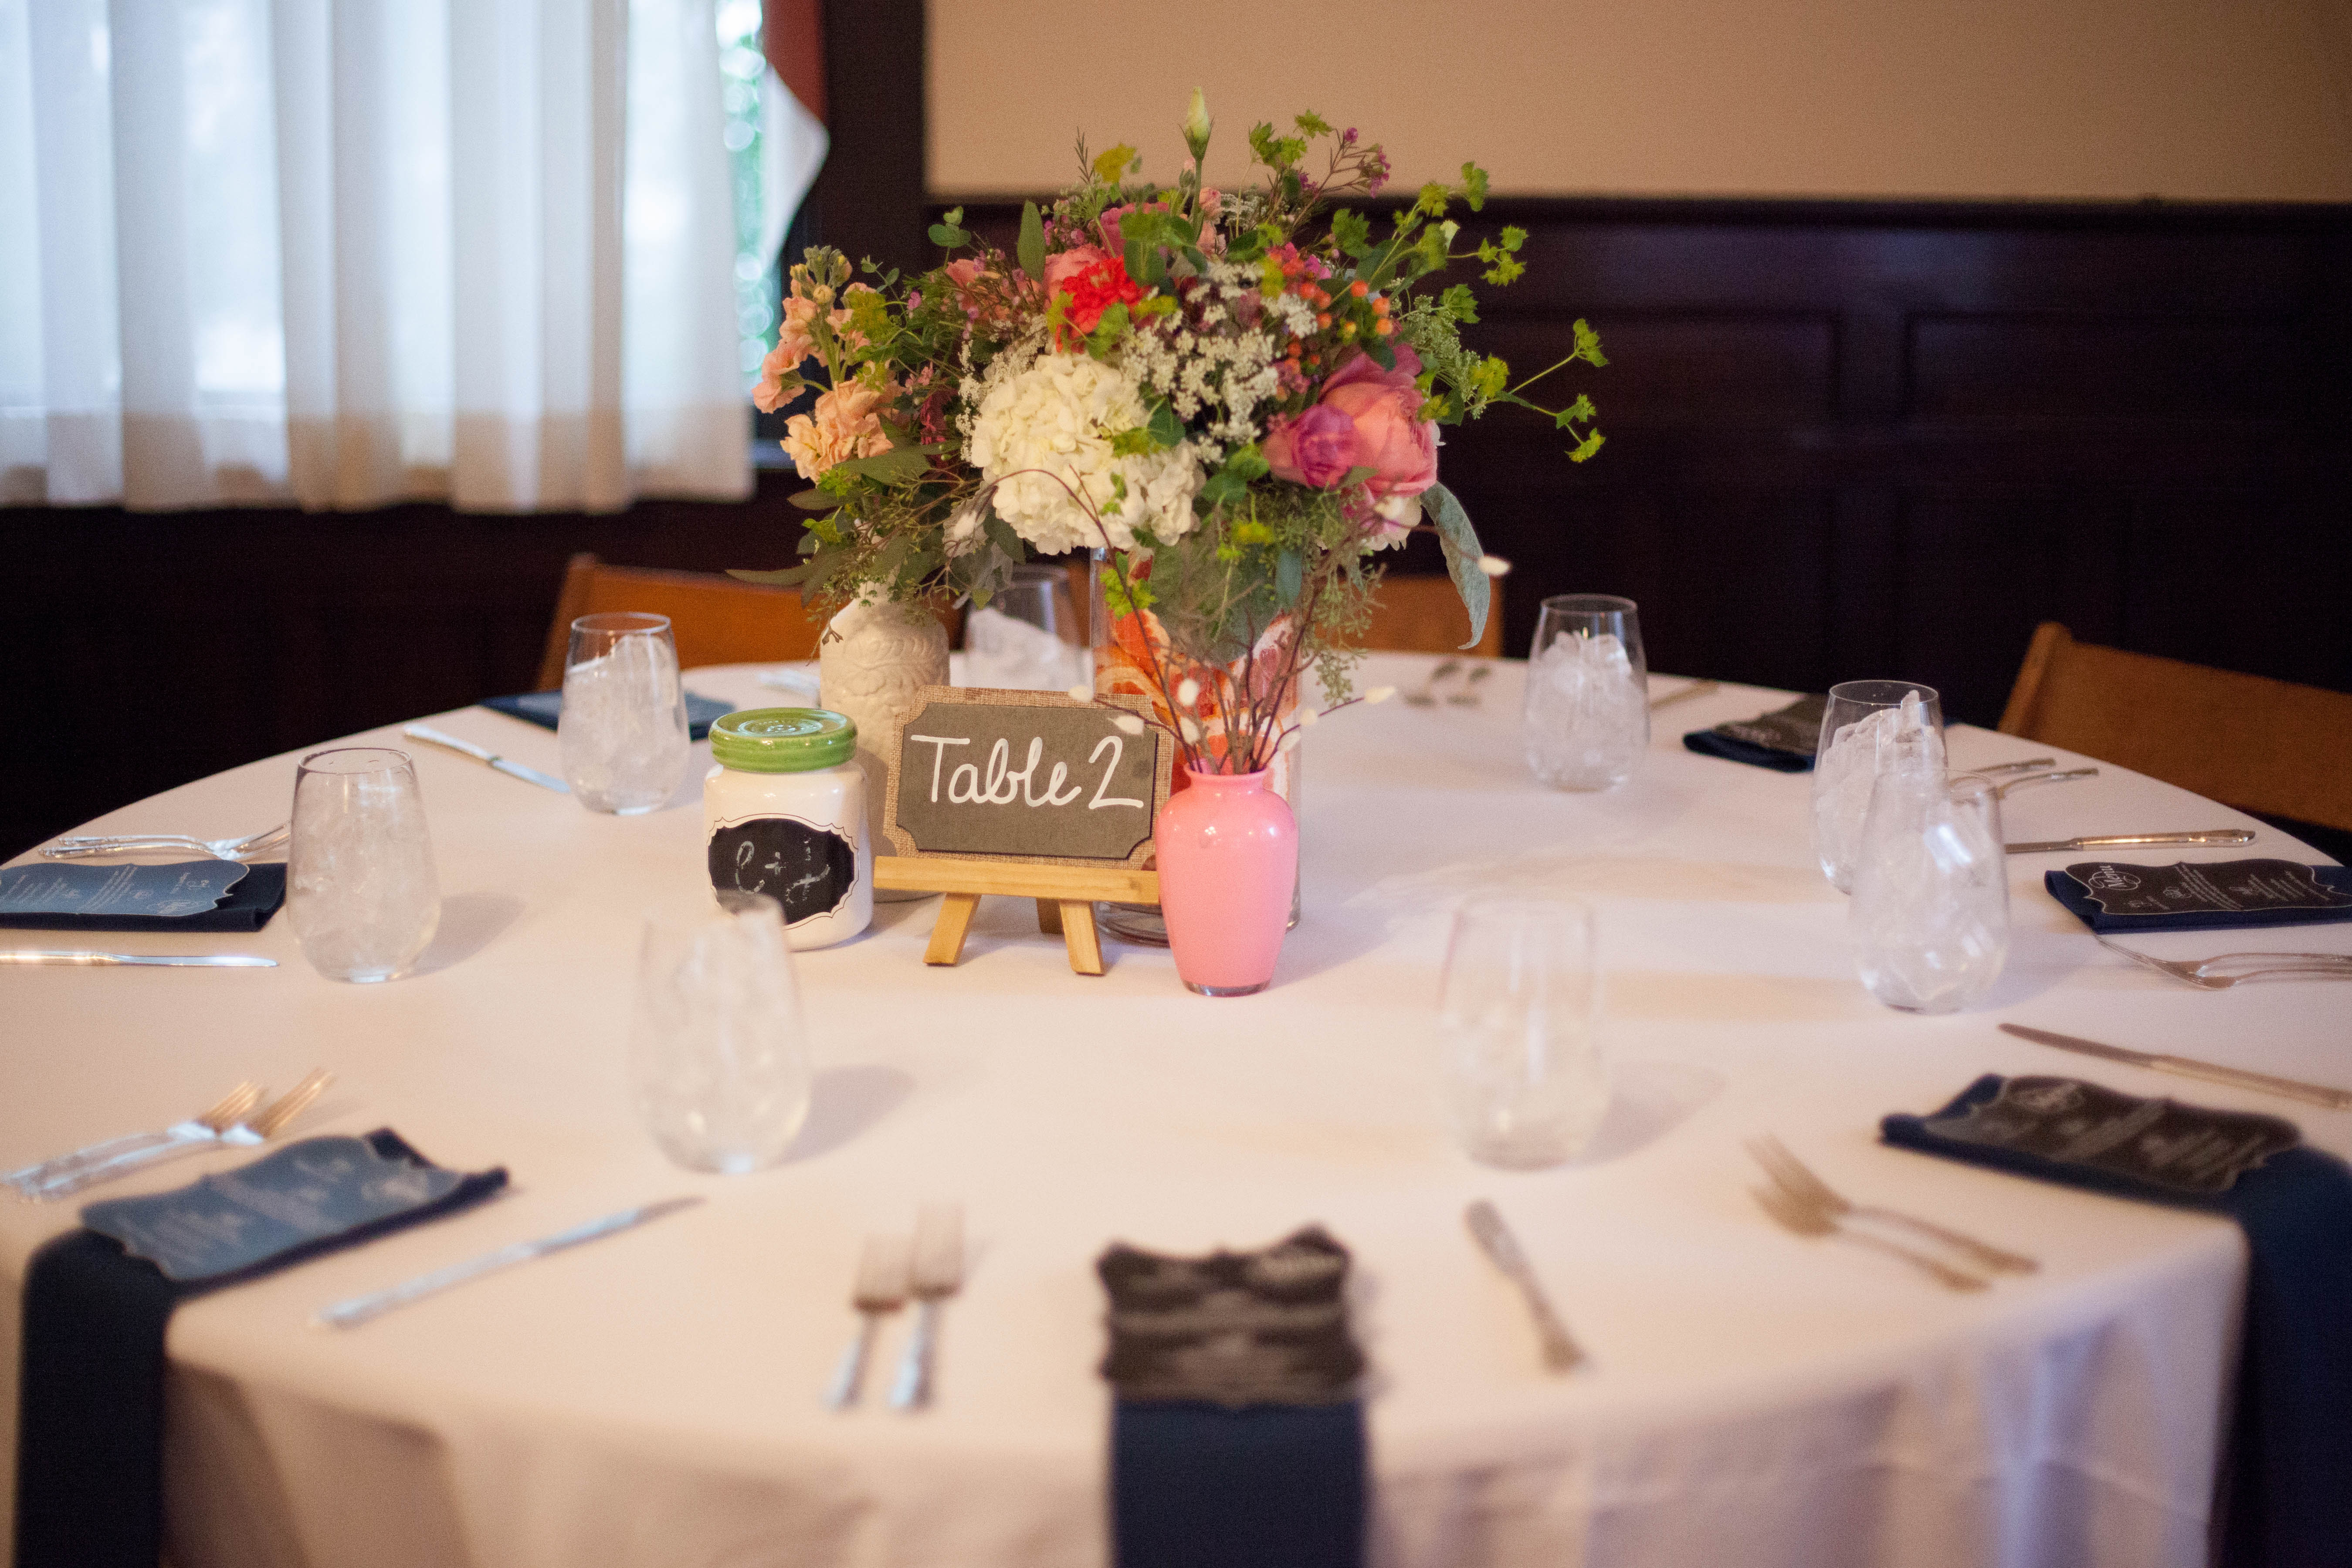 round guest table and white cotton linen with florals in painted bud vases from The English Garden Raleigh and table number on chalkboard with navy napkins and menu cards